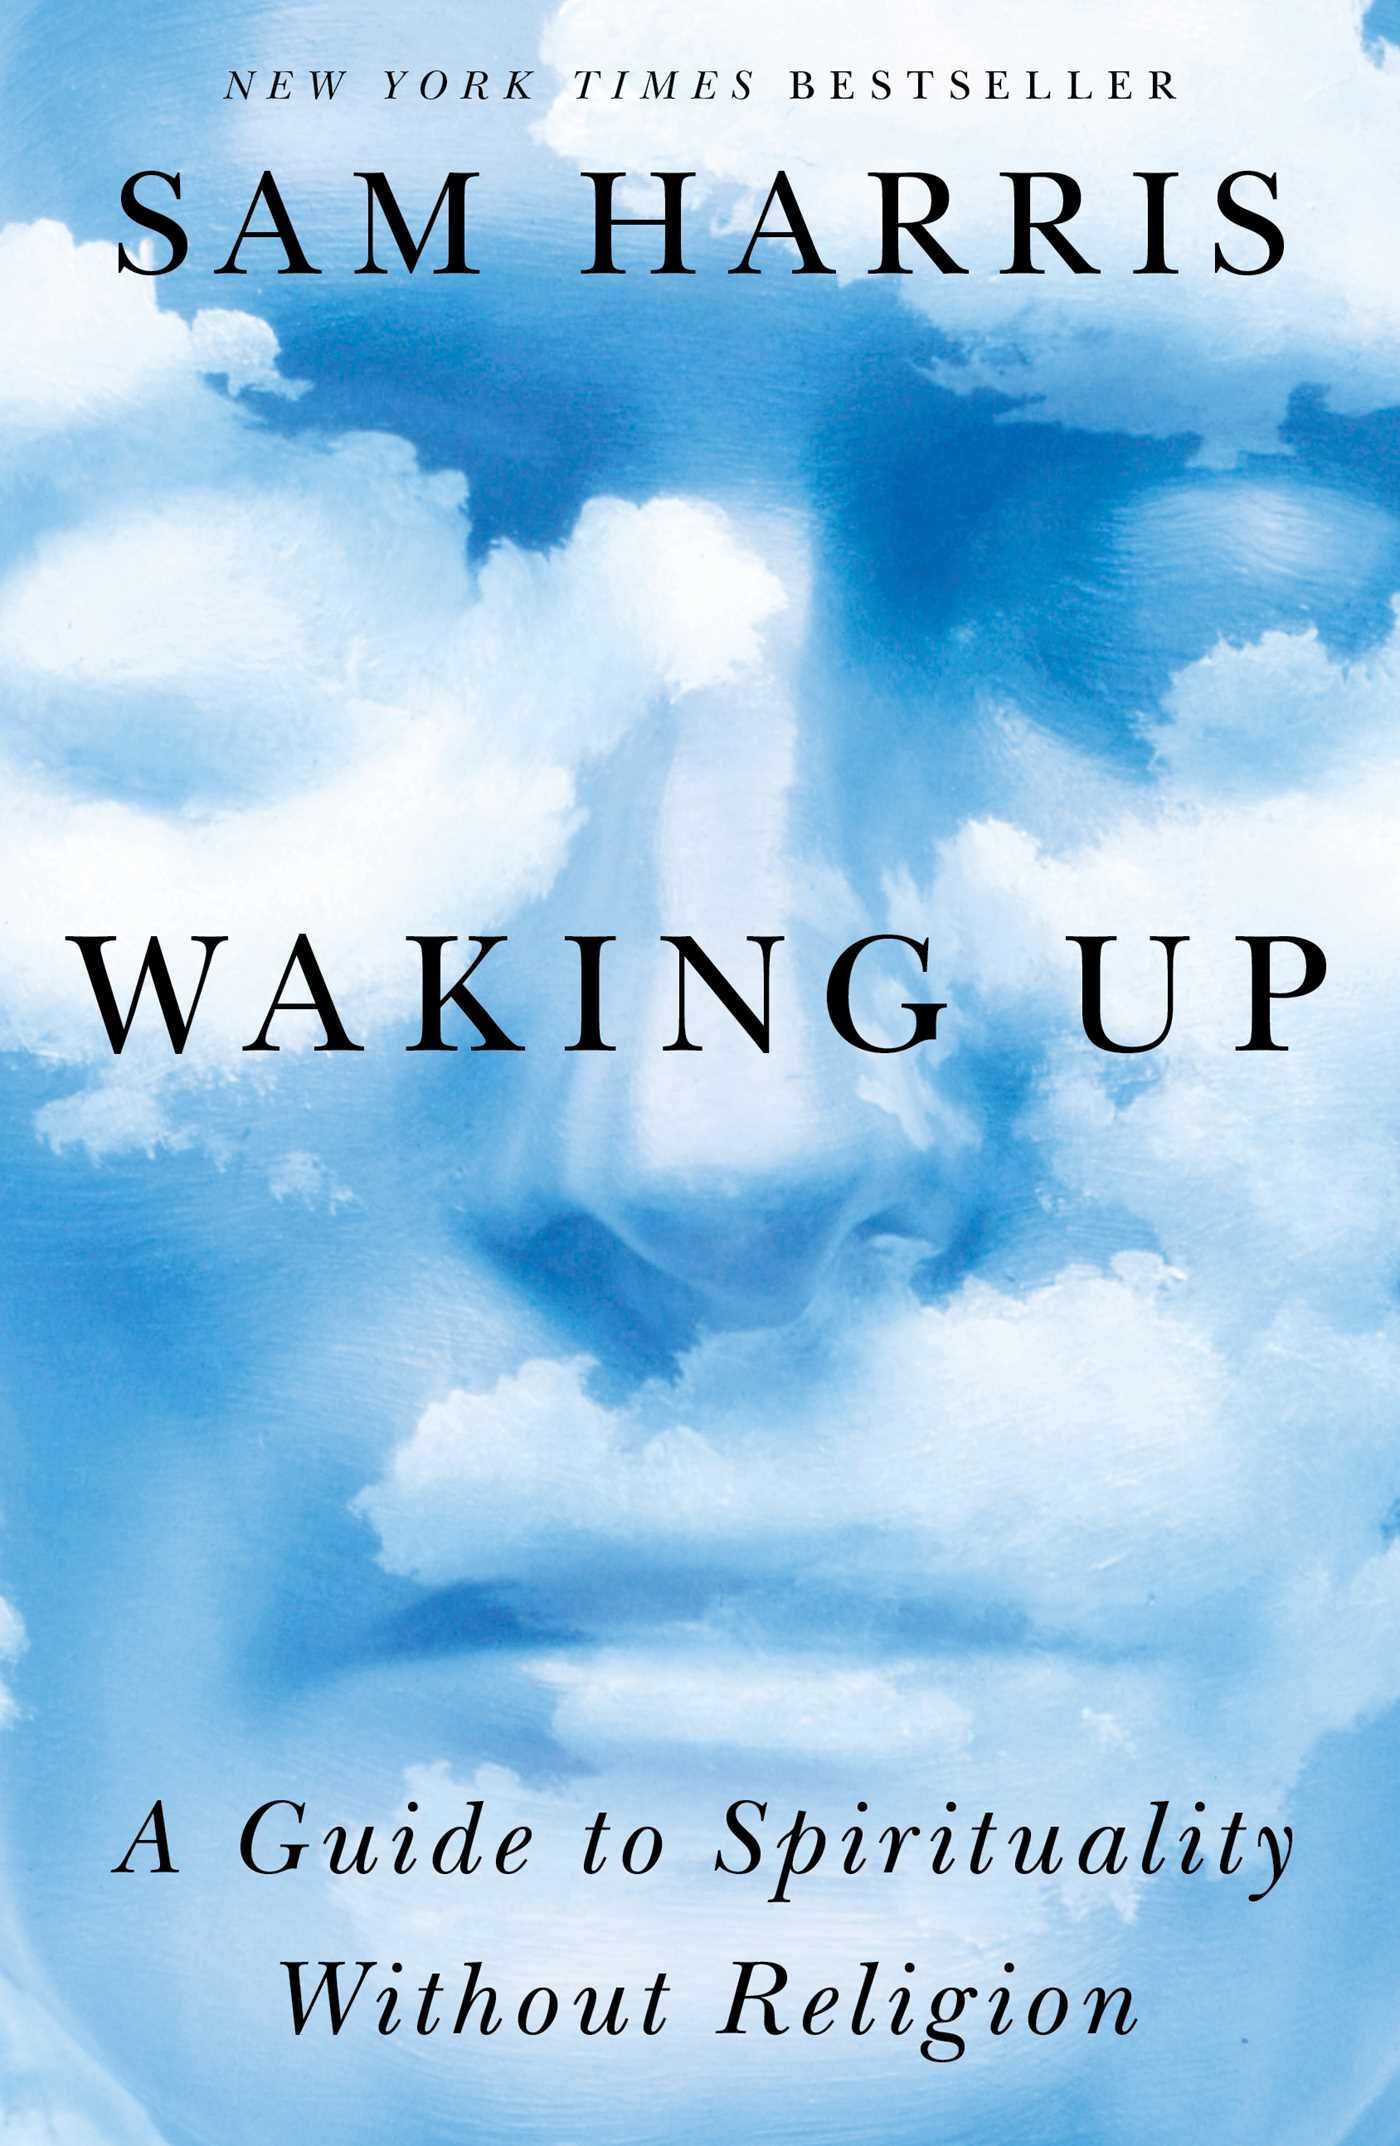 Waking-up-9781451636017_hr